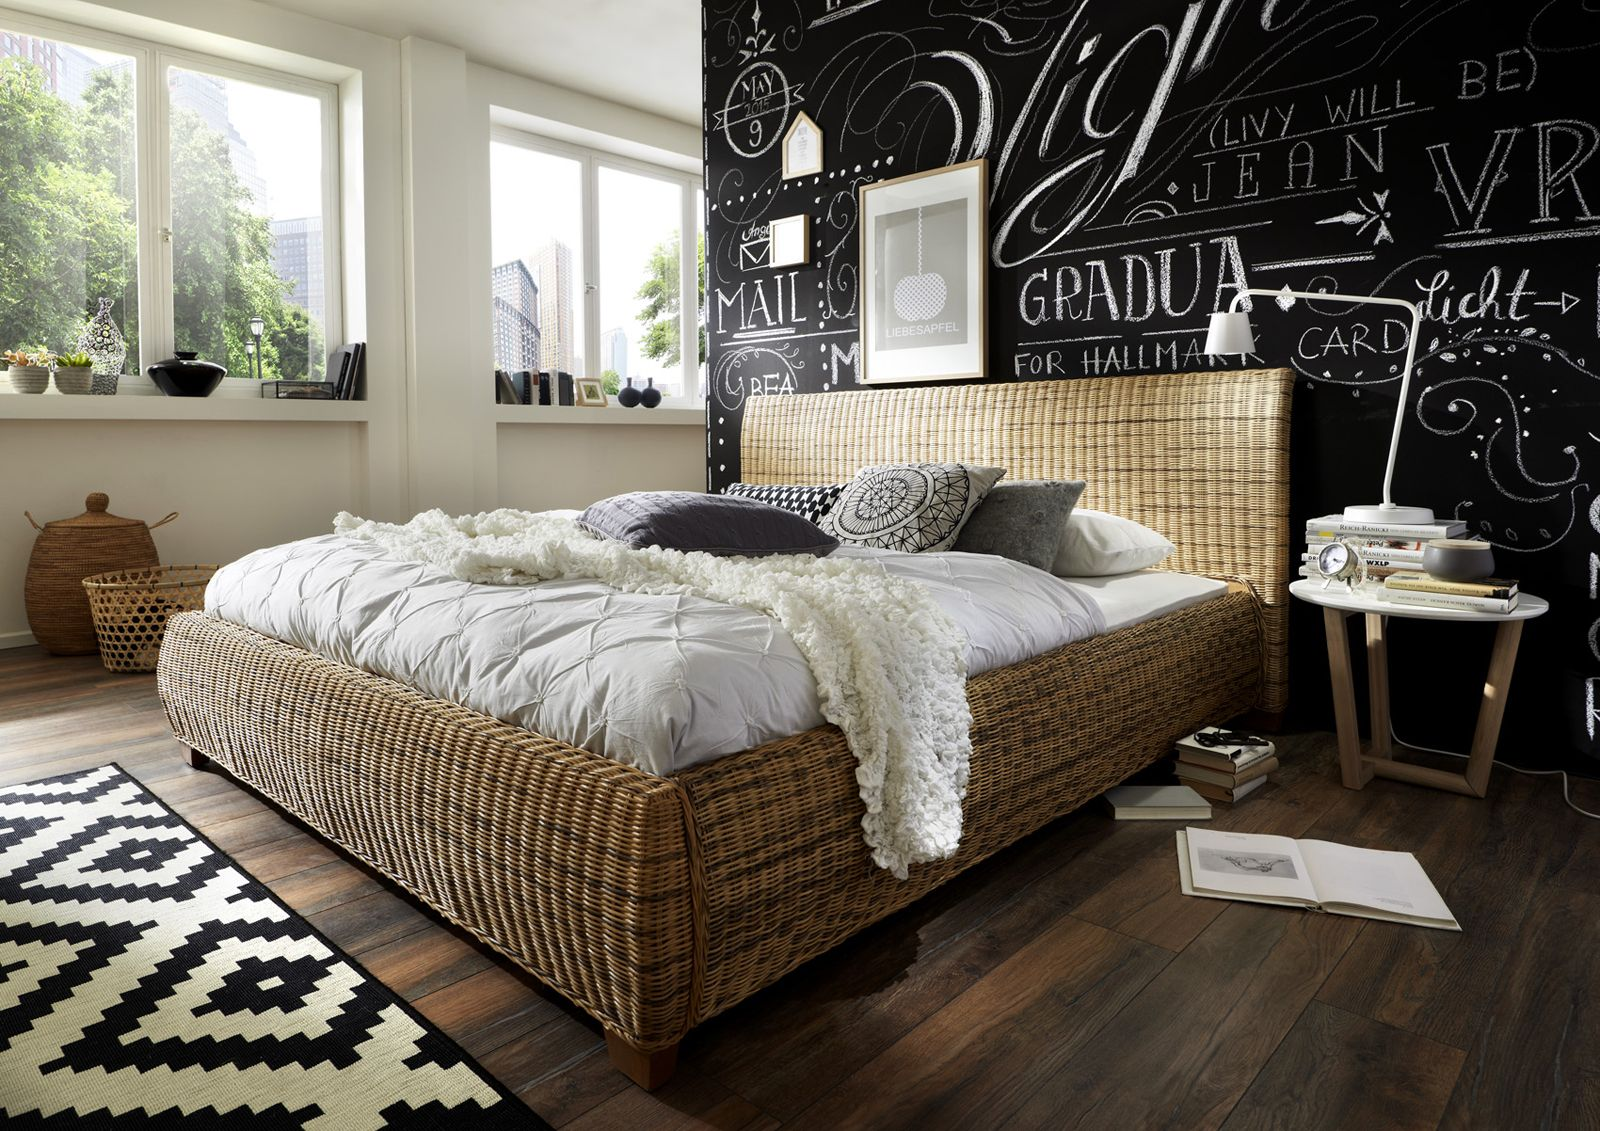 sam rattanbett 140 x 200 cm rattan ngan 9134 auf lager. Black Bedroom Furniture Sets. Home Design Ideas